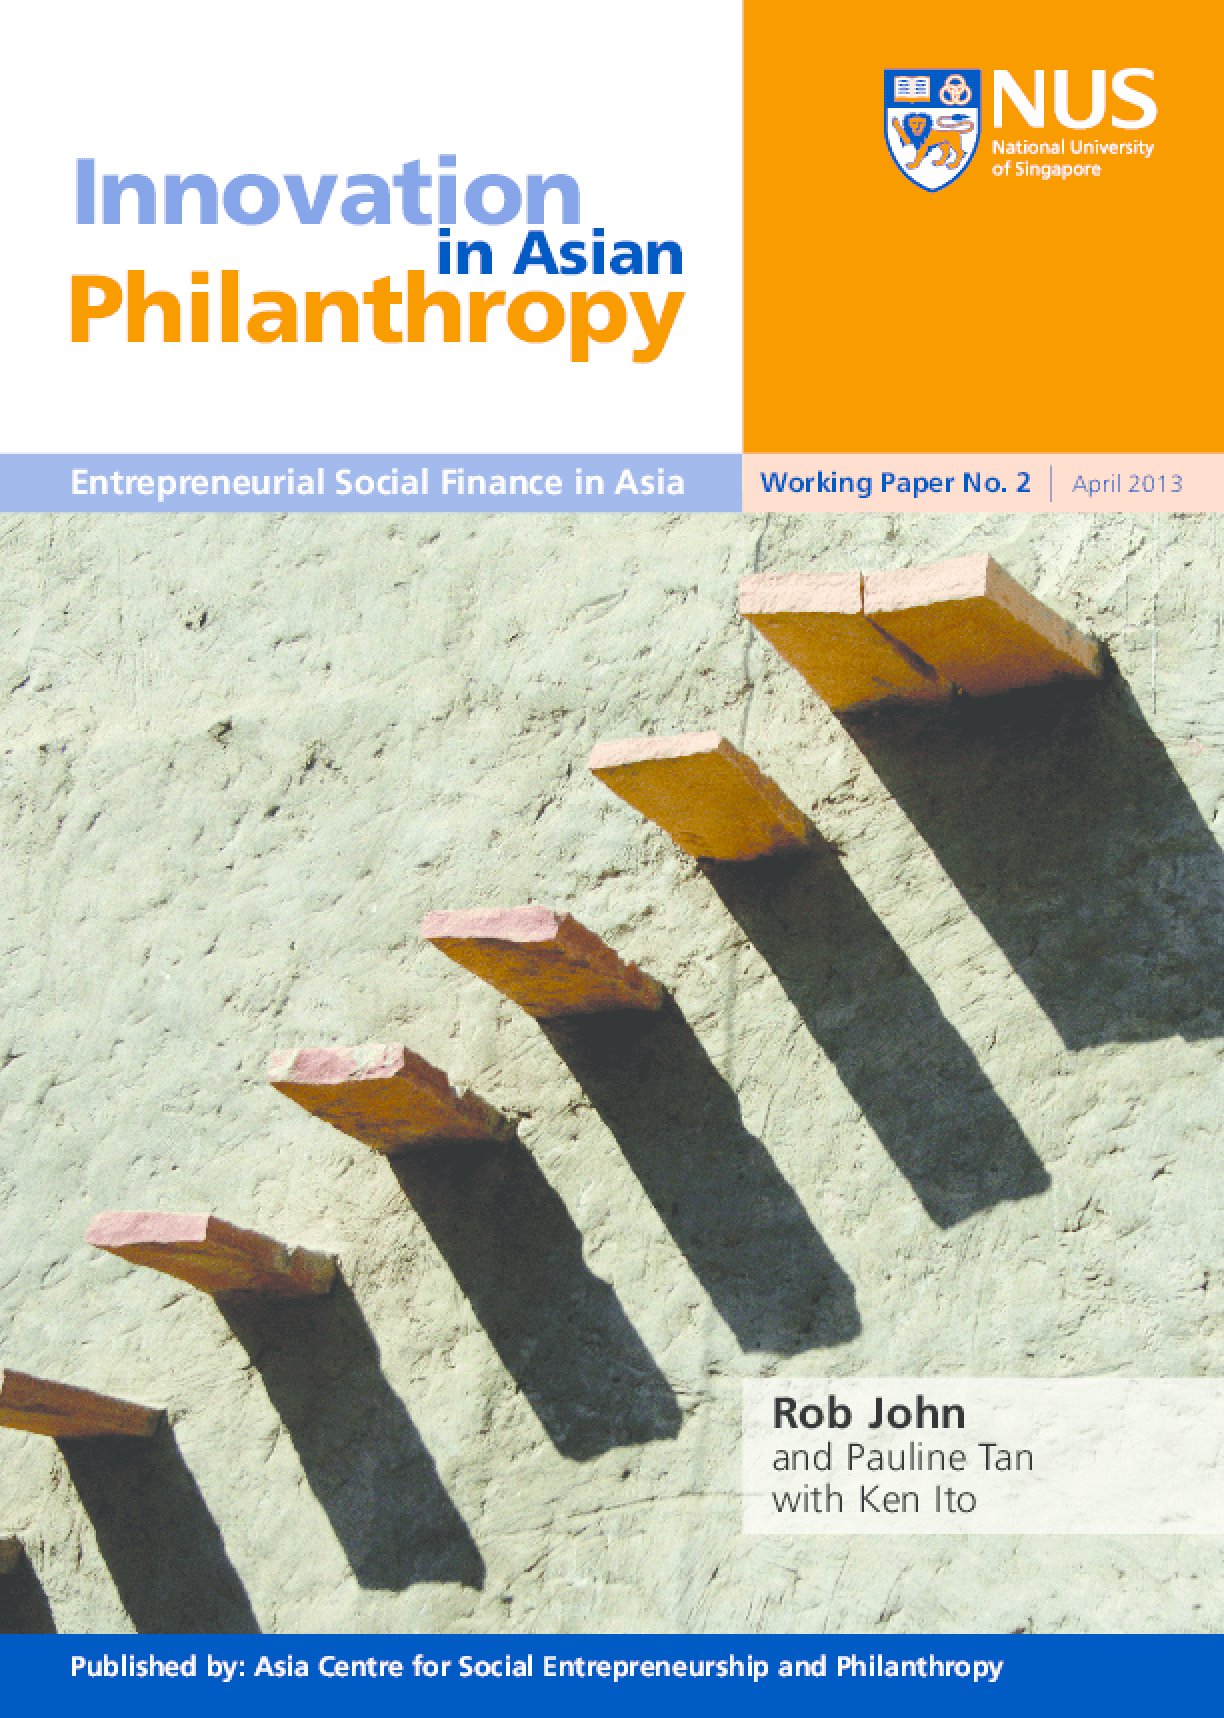 Innovation in Asian Philanthropy: Entrepreneurial Social Finance in Asia